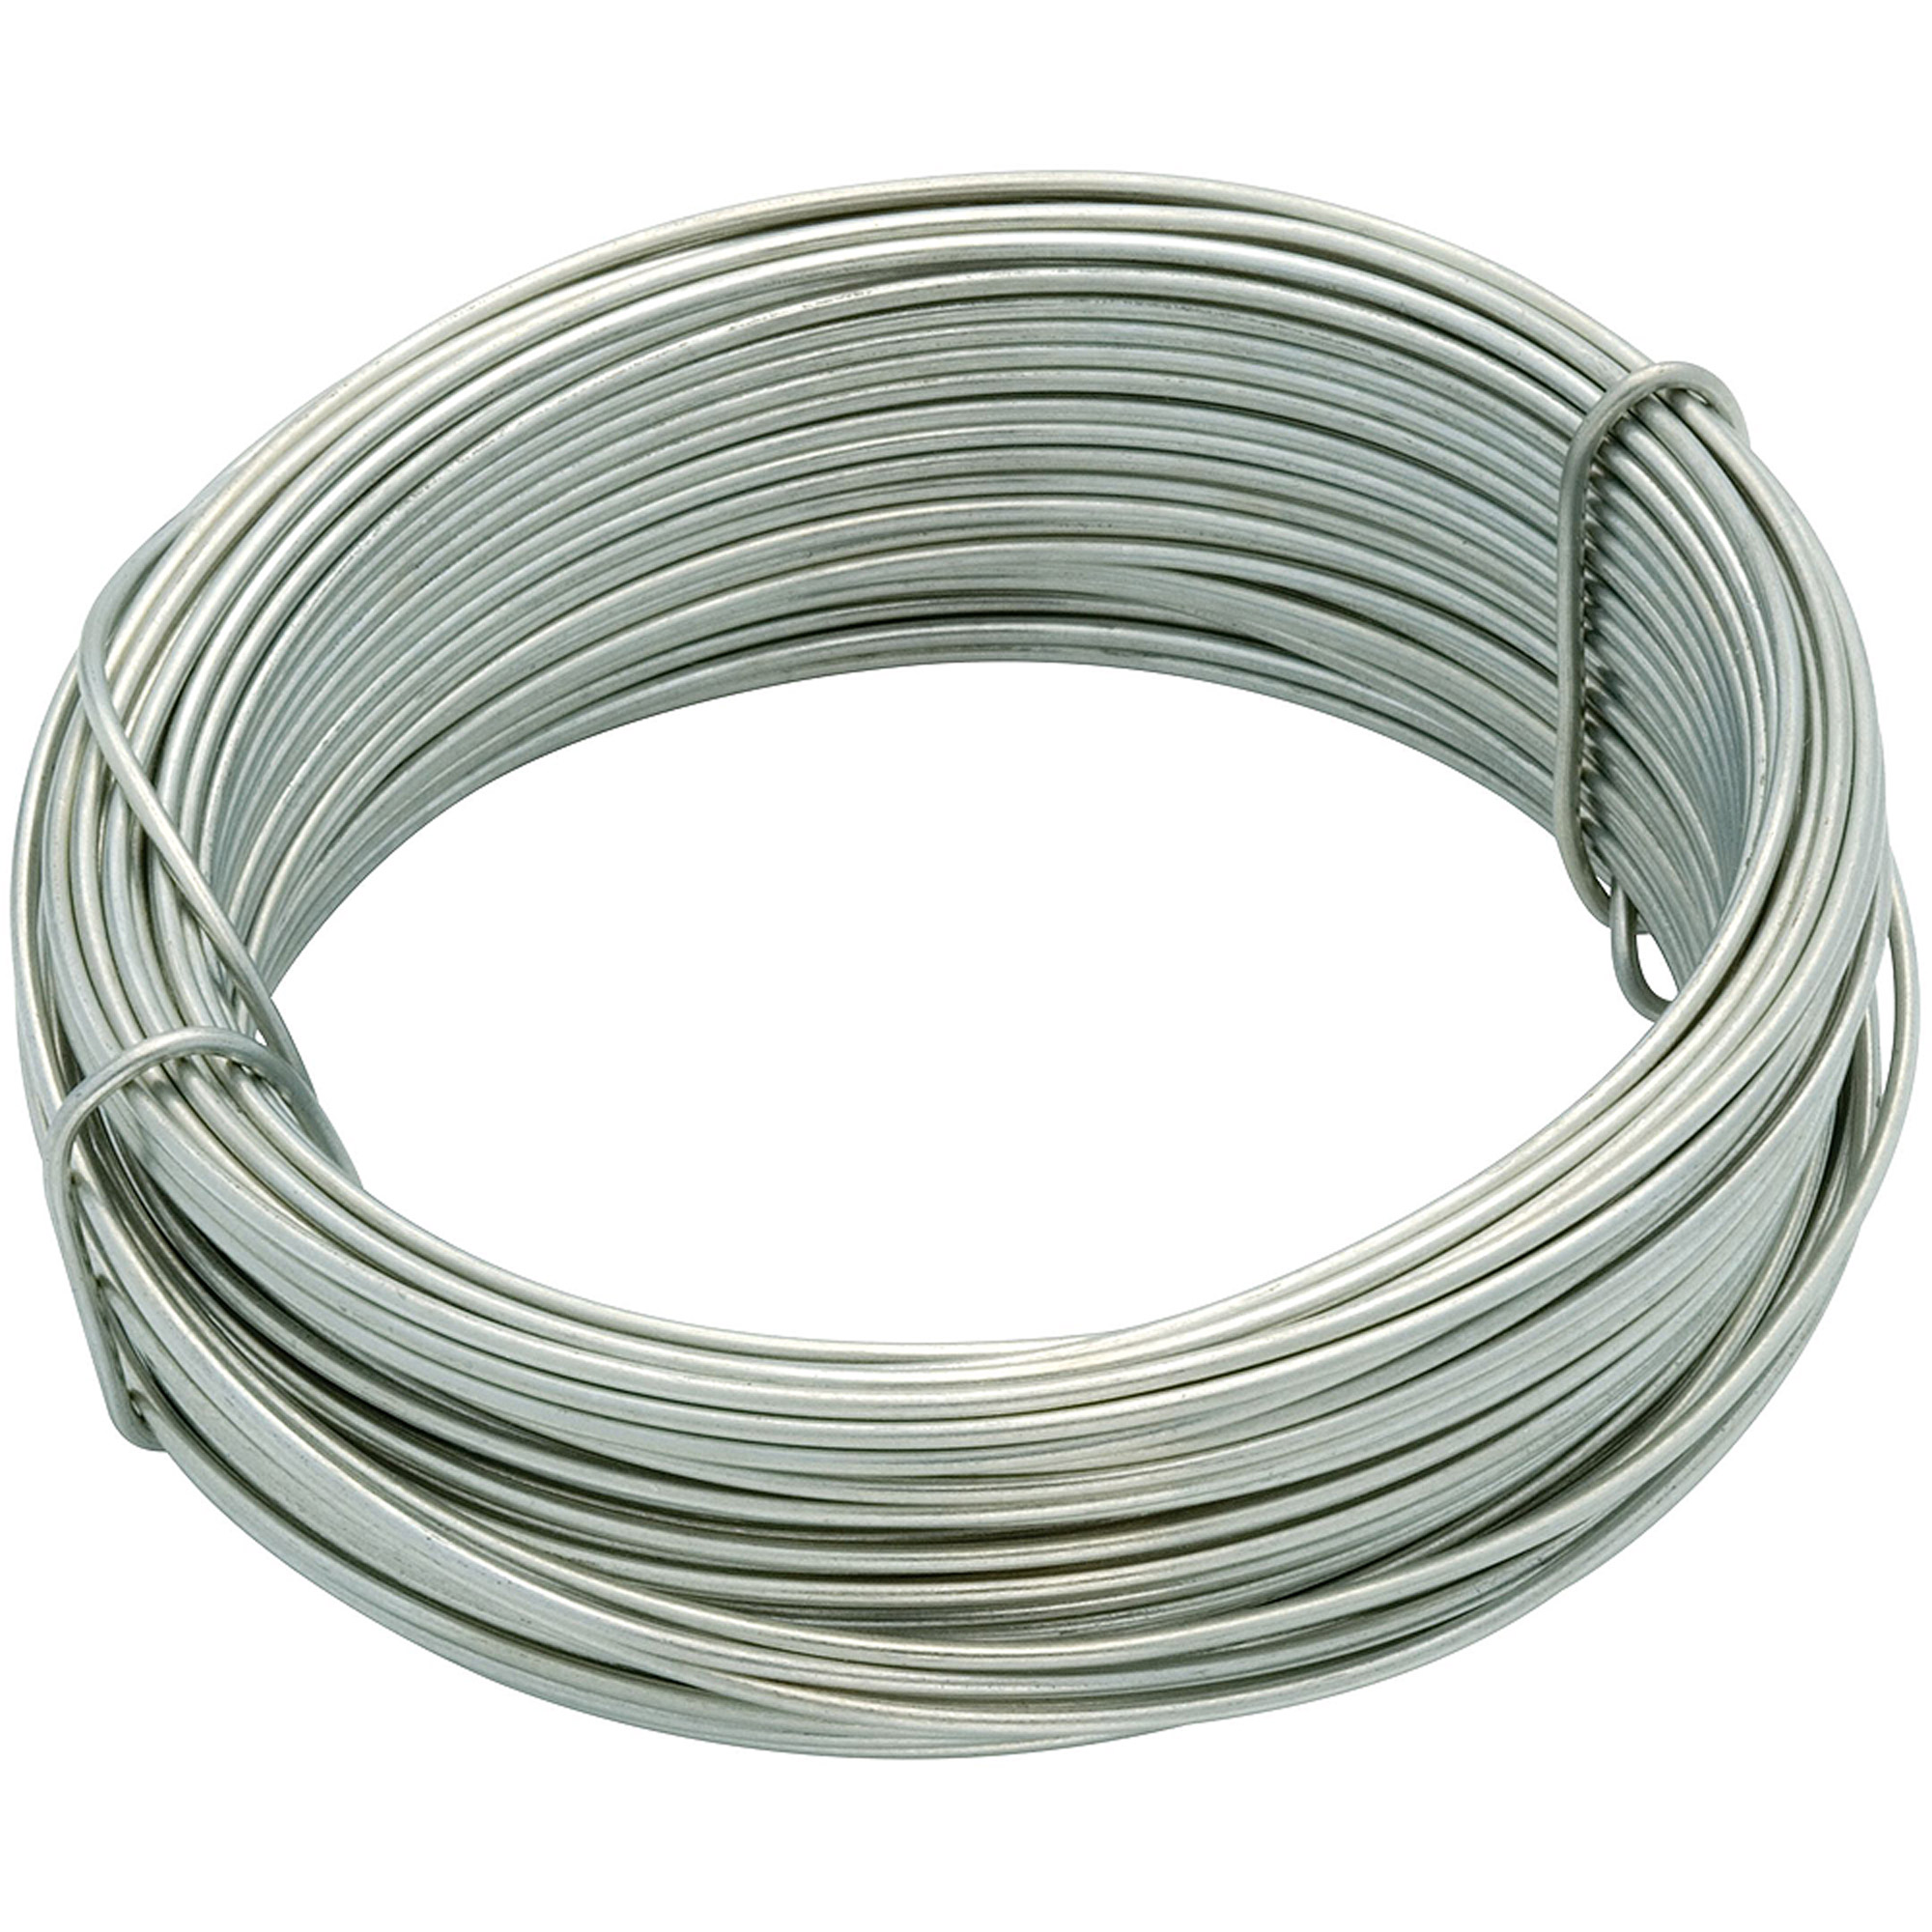 Arrow 19-Gauge Picture Wire - Walmart.com